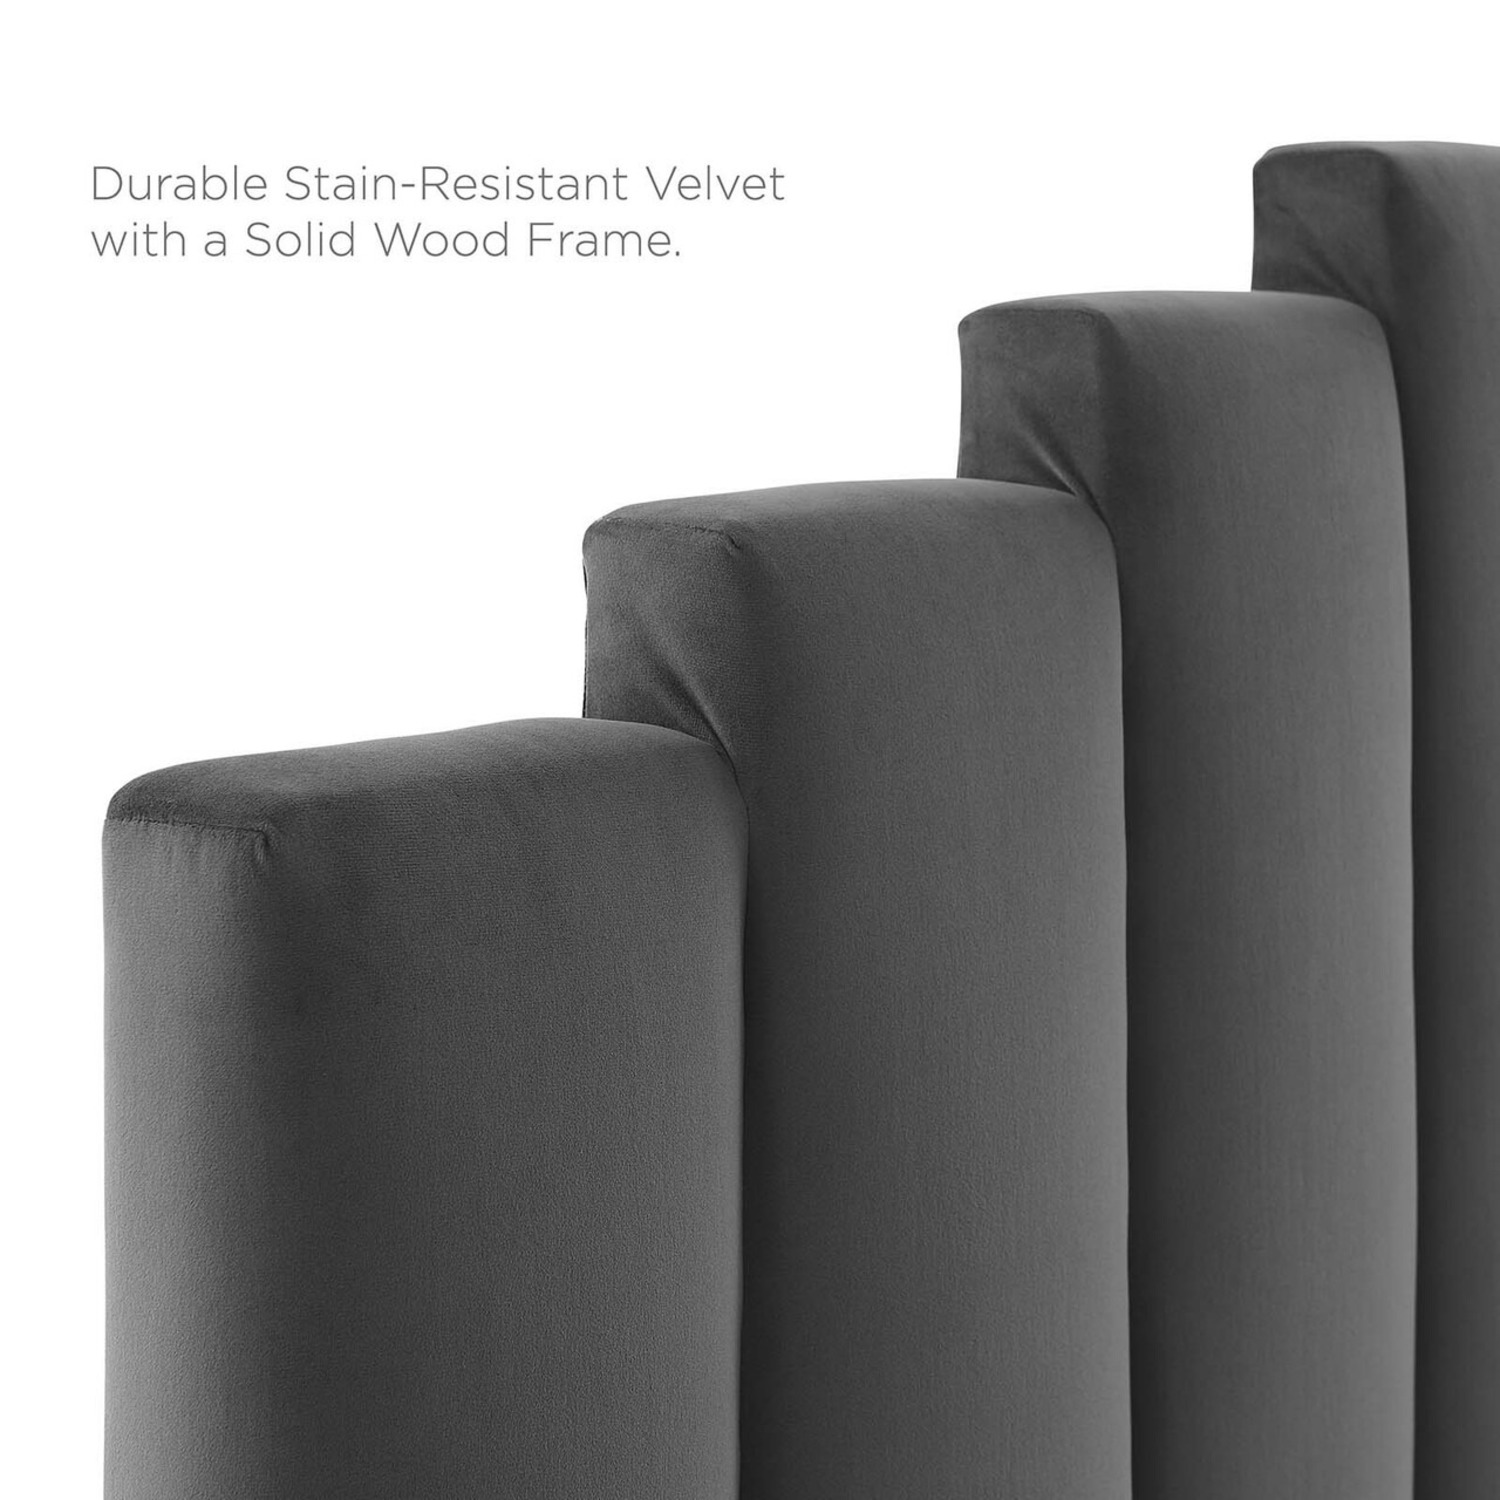 Twin Bed In Charcoal Fabric W/ Dense Foam Padding - image-9